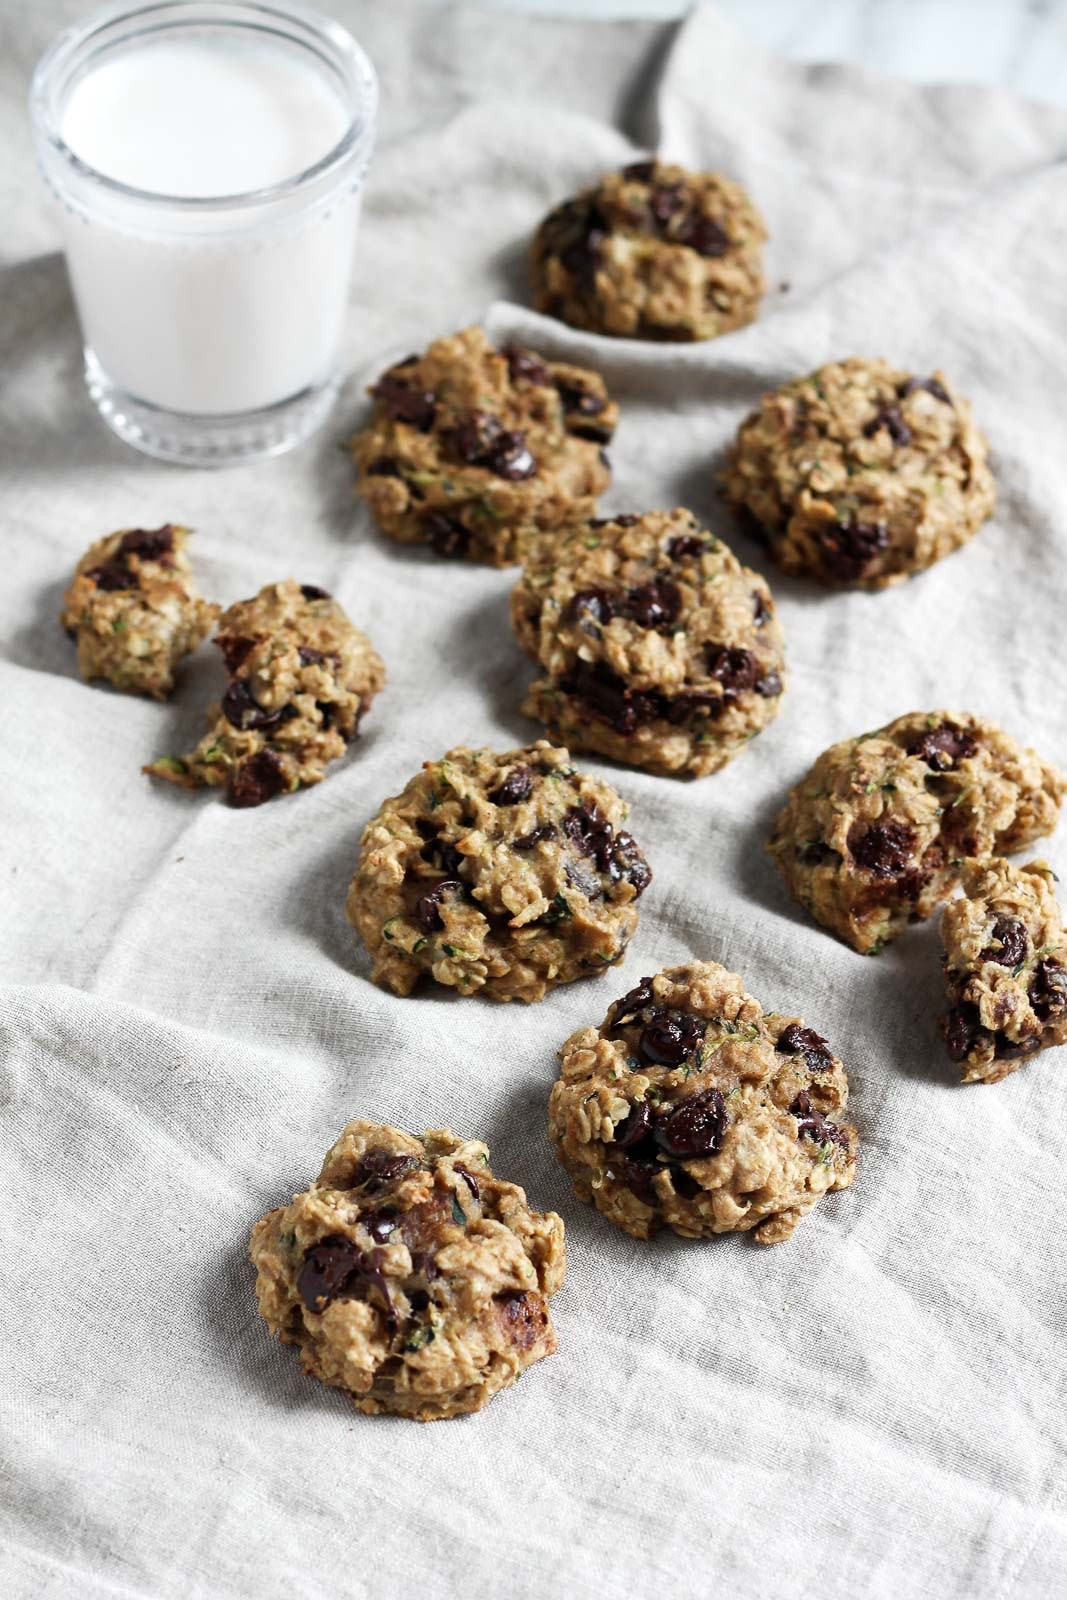 Oat Chocolate Chip Cookies Healthy  Healthy Chocolate Chip Zucchini Oatmeal Cookies